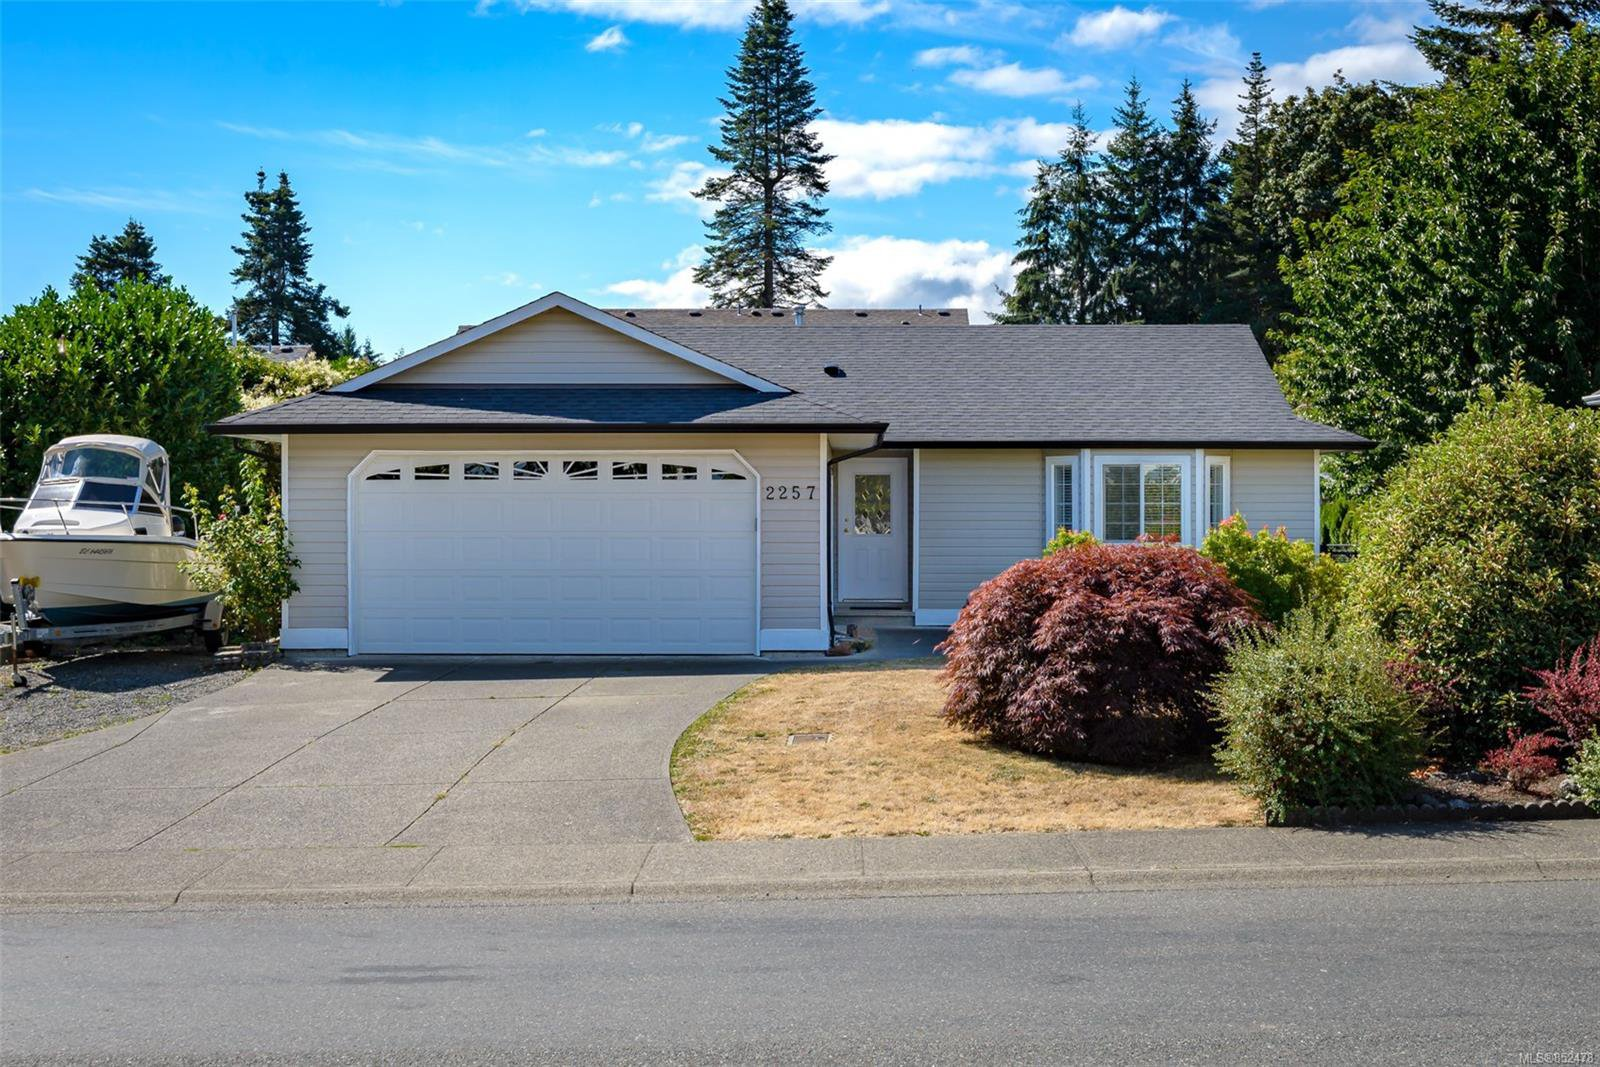 Main Photo: 2257 Bolt Ave in : CV Comox (Town of) Single Family Detached for sale (Comox Valley)  : MLS®# 852478